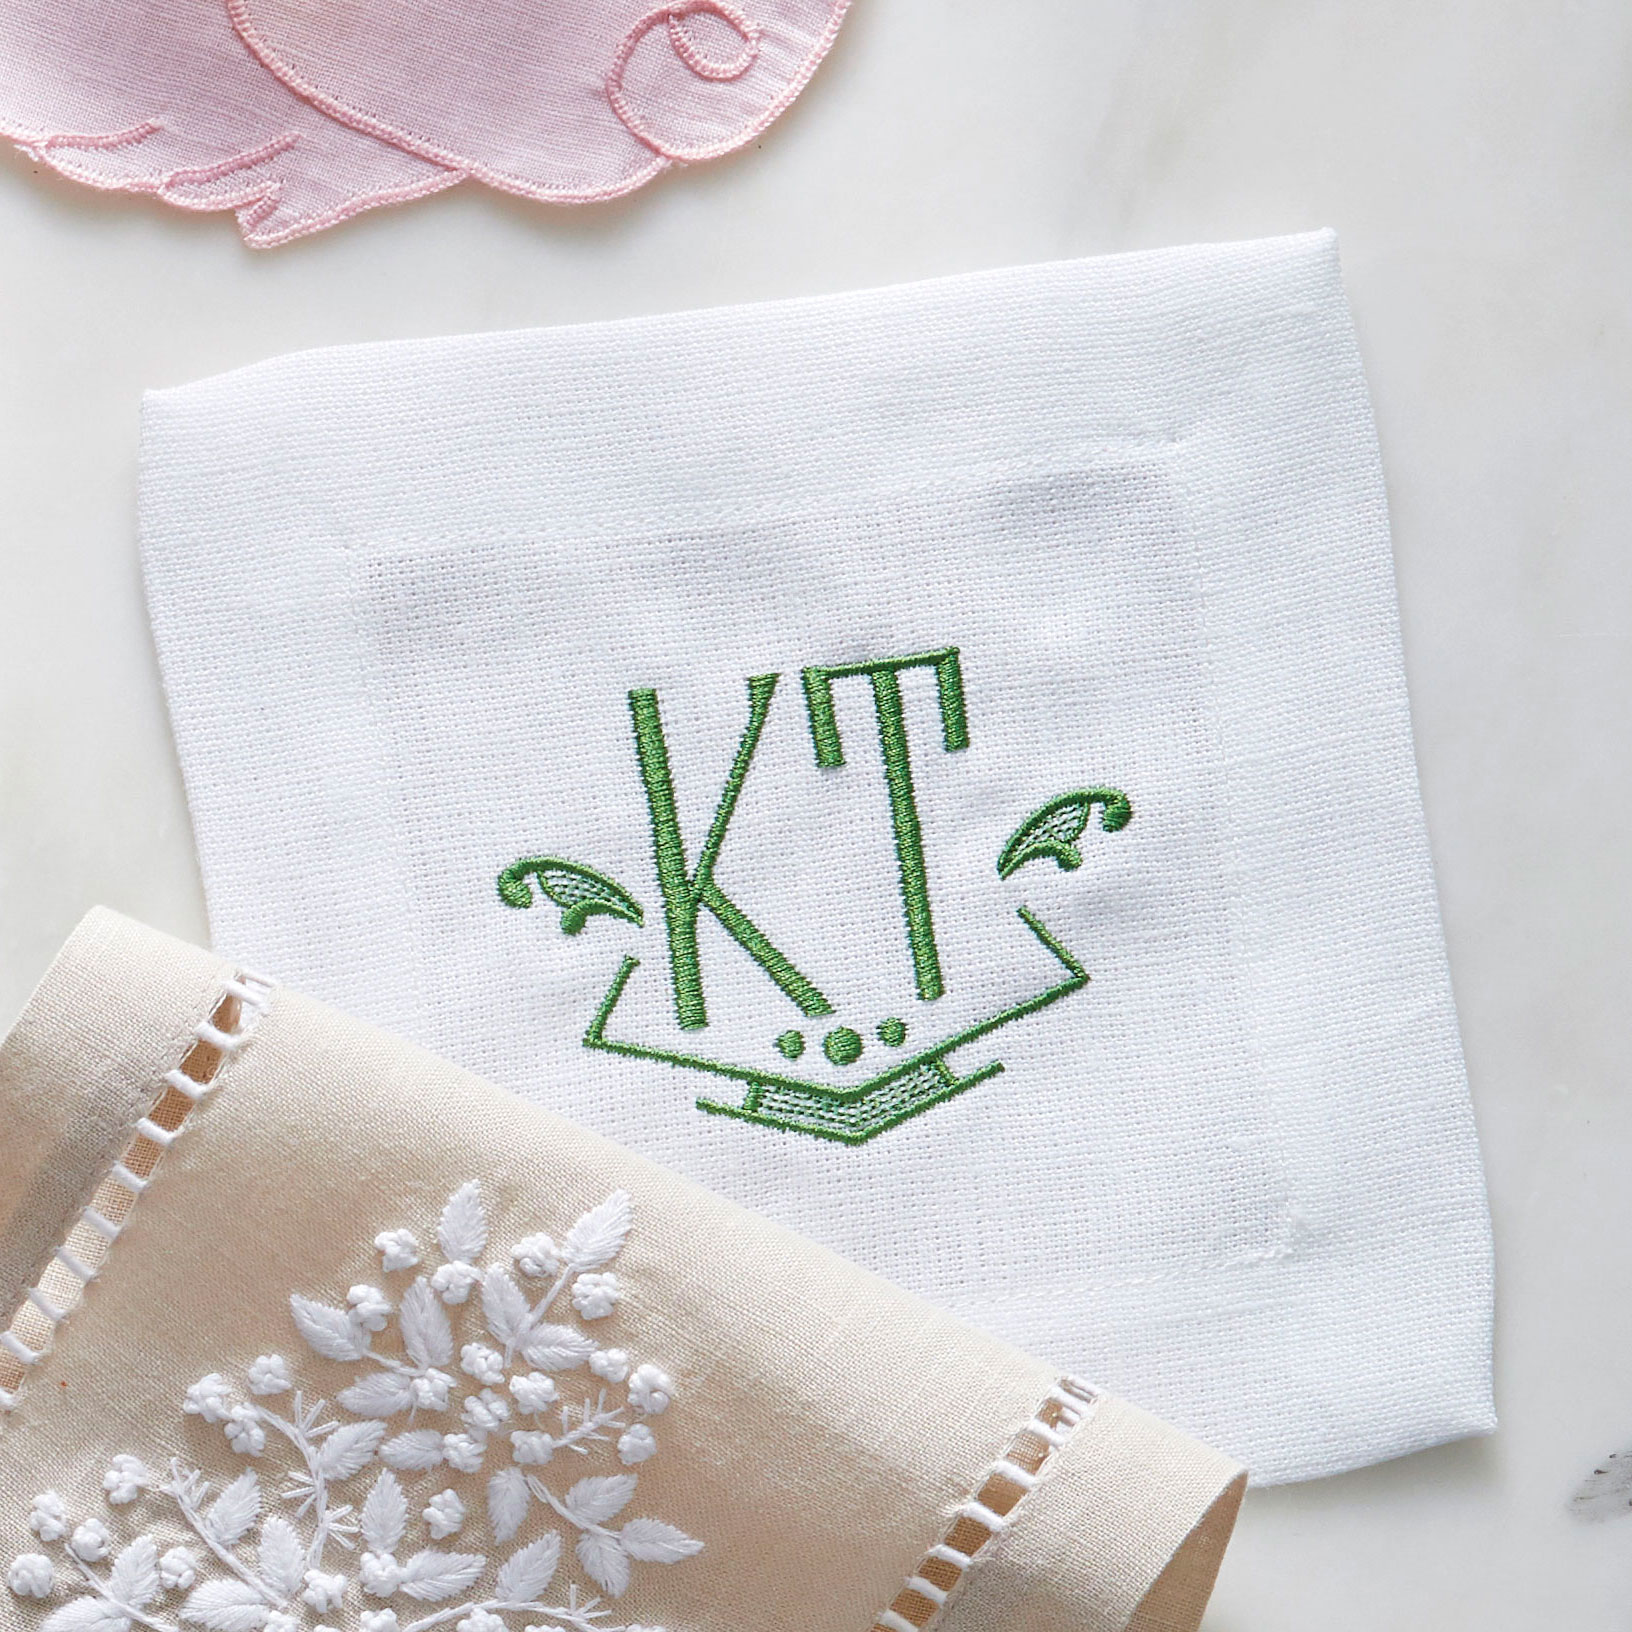 15 Cocktail Napkins For Your Holiday Parties Southern Living